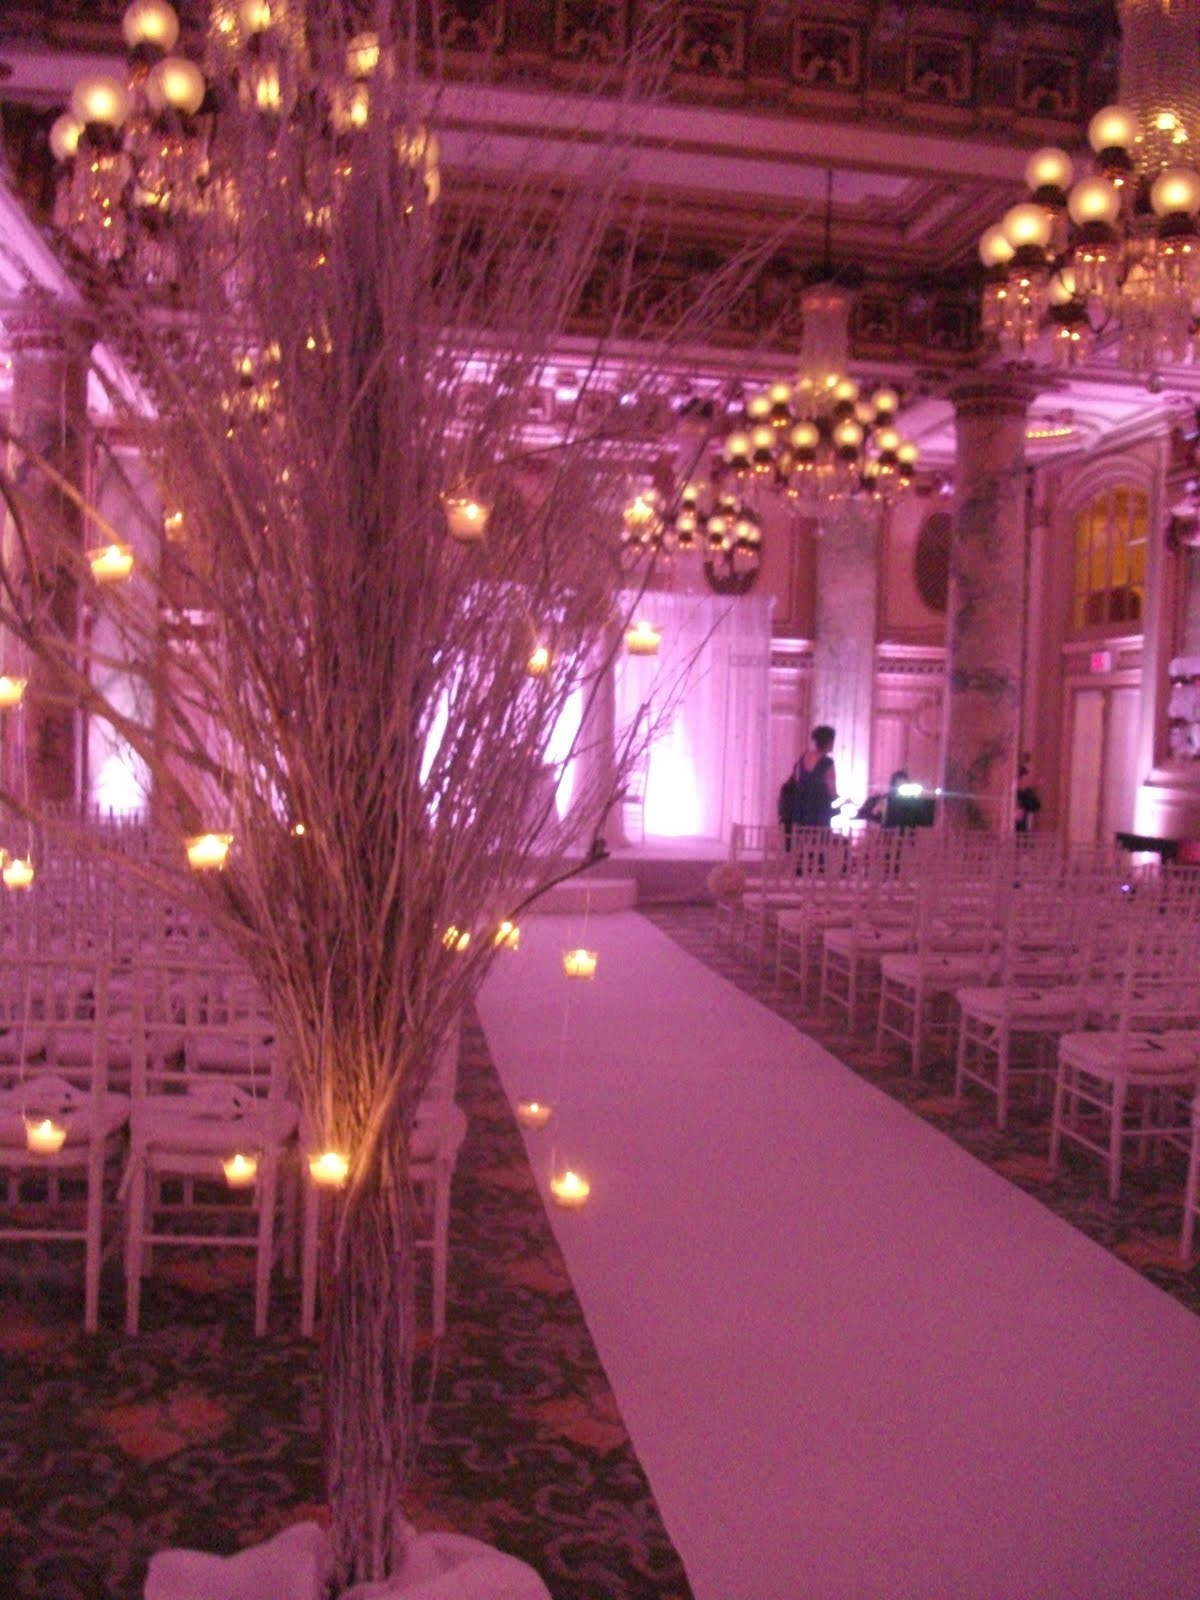 Pictures Of Pipe And Drape From Recent Events Davinci Florist